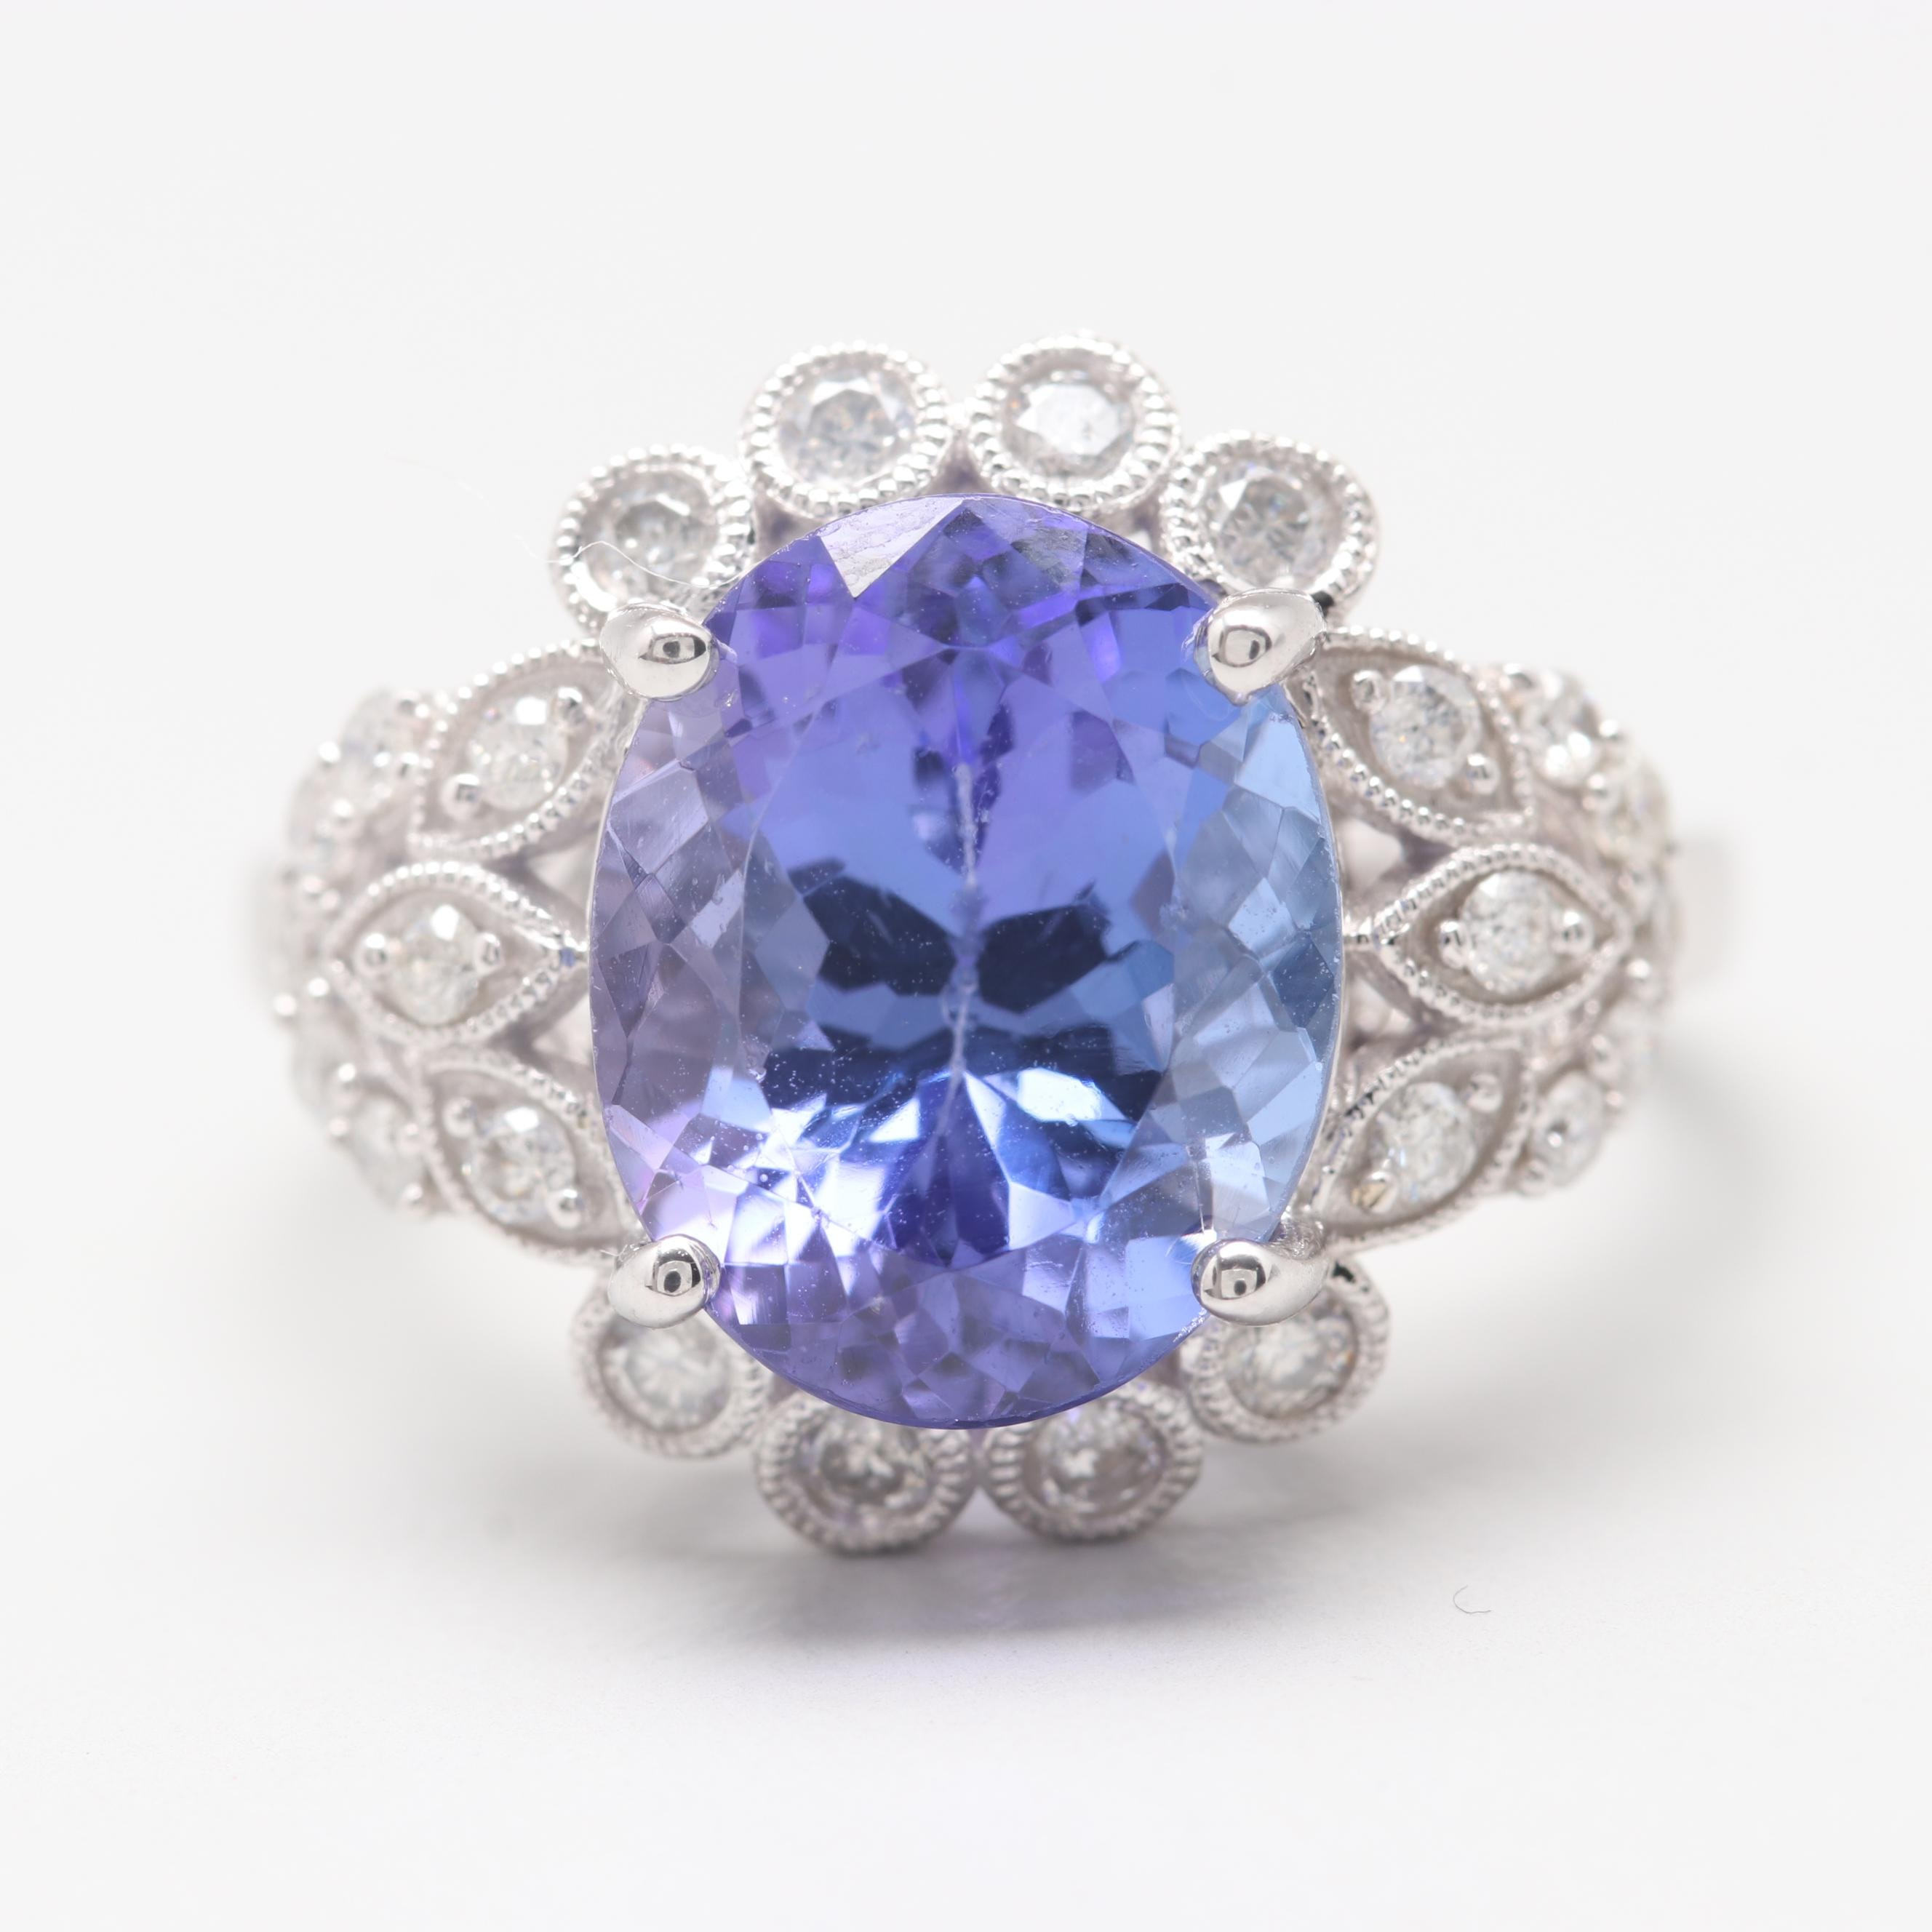 14K White Gold 5.35 CT Tanzanite and Diamond Ring